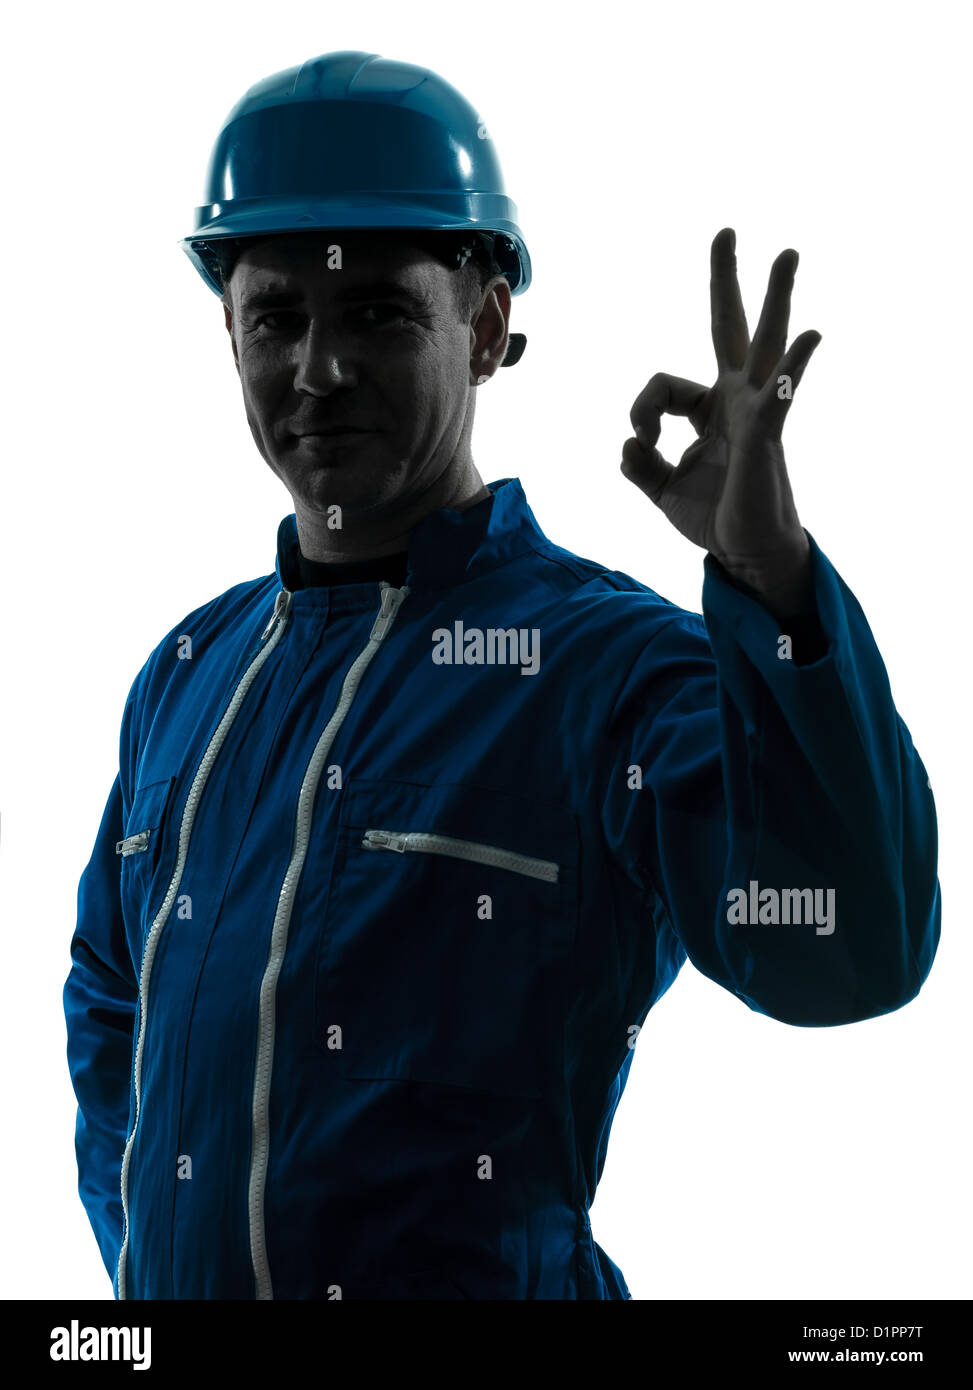 one  man construction worker smiling silhouette portrait okay gesture in studio on white background - Stock Image